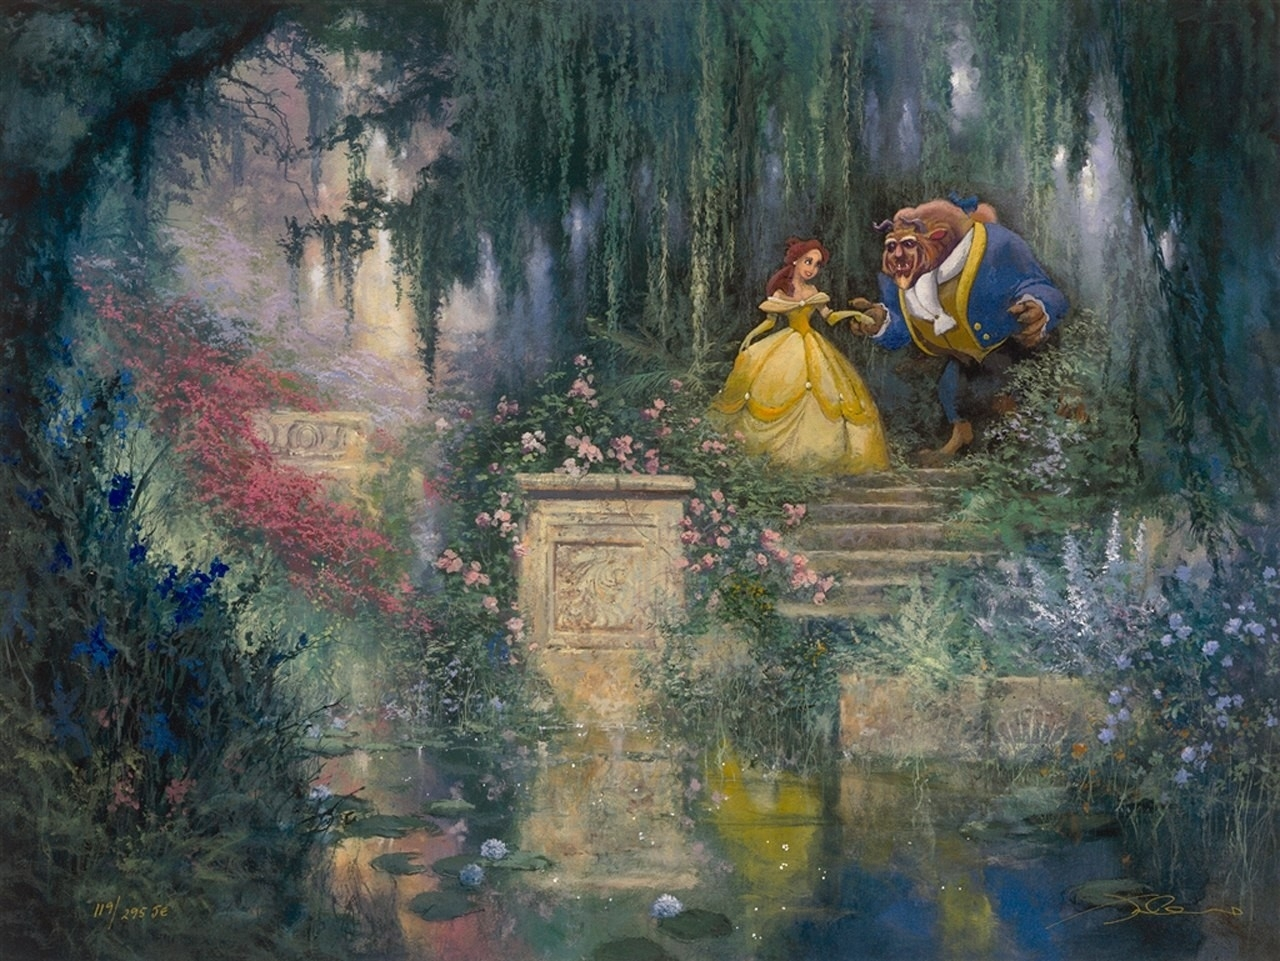 Beauty And The Beast High Quality Hd Wallpapers All Hd Wallpapers